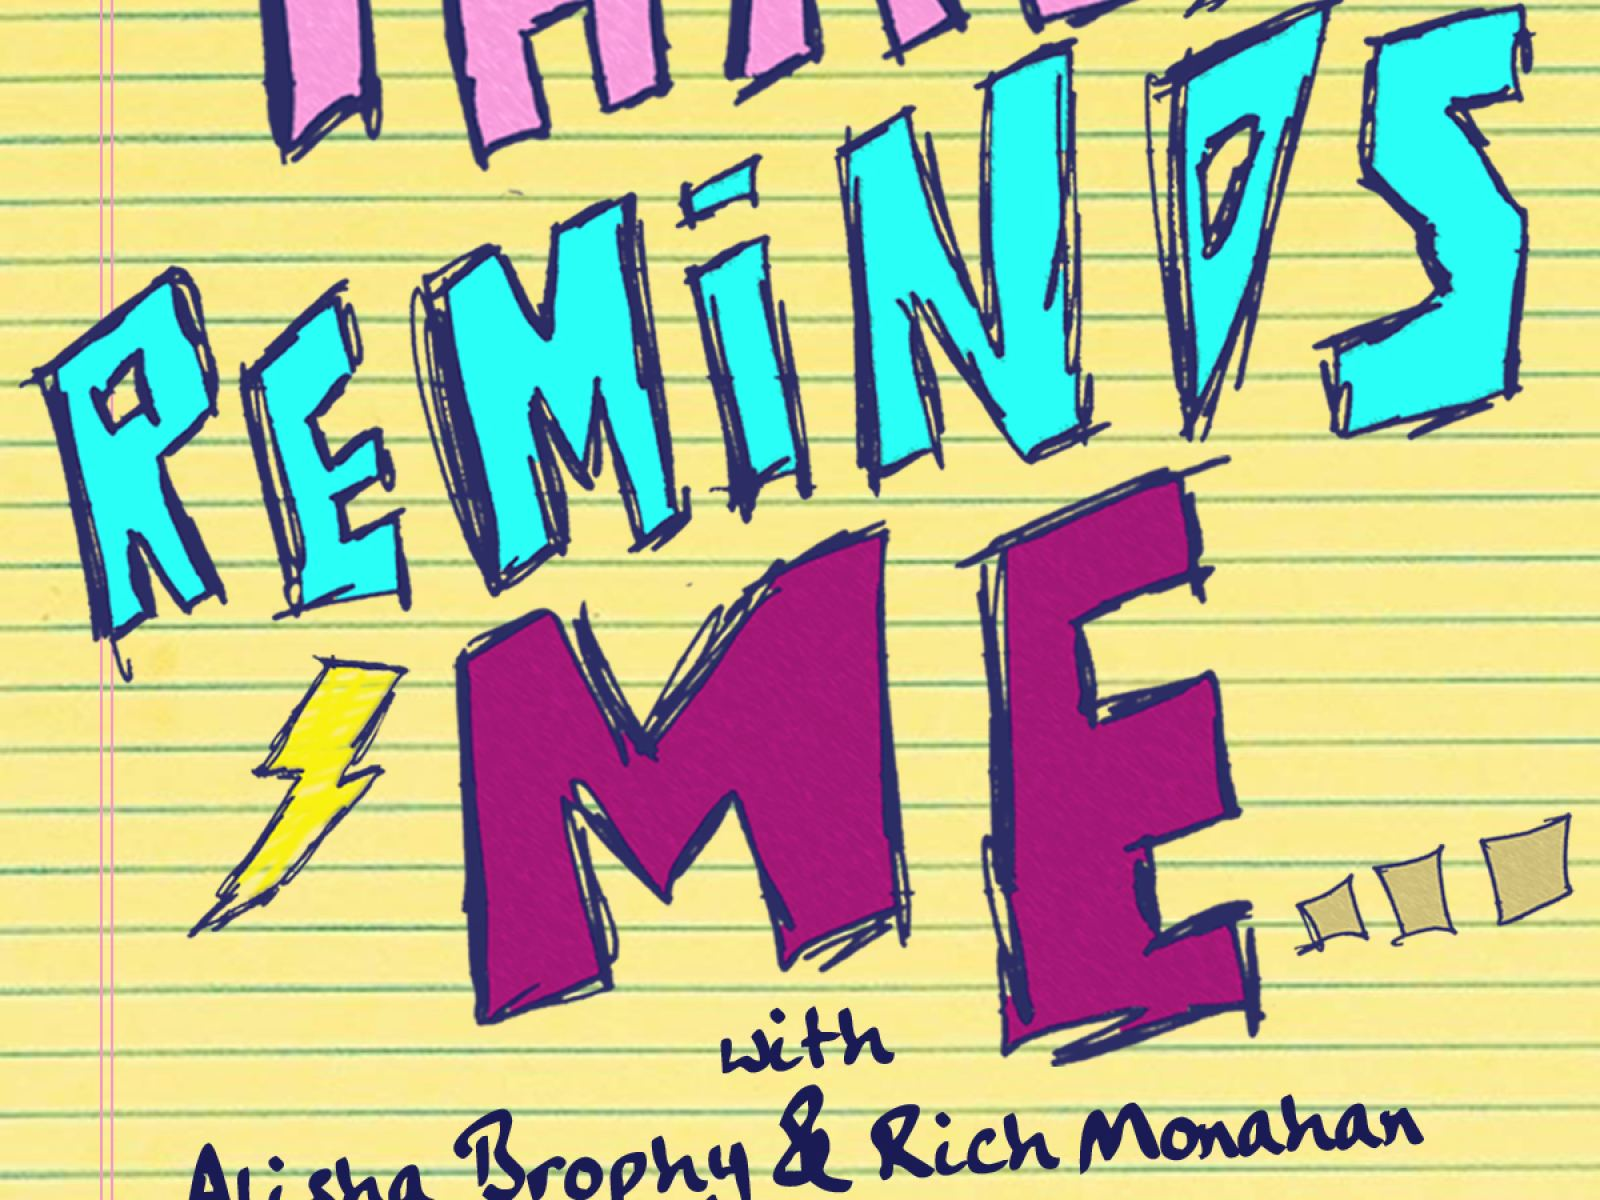 That Reminds Me - a comedic storytelling event at The Virgil Tues. Nov 19th